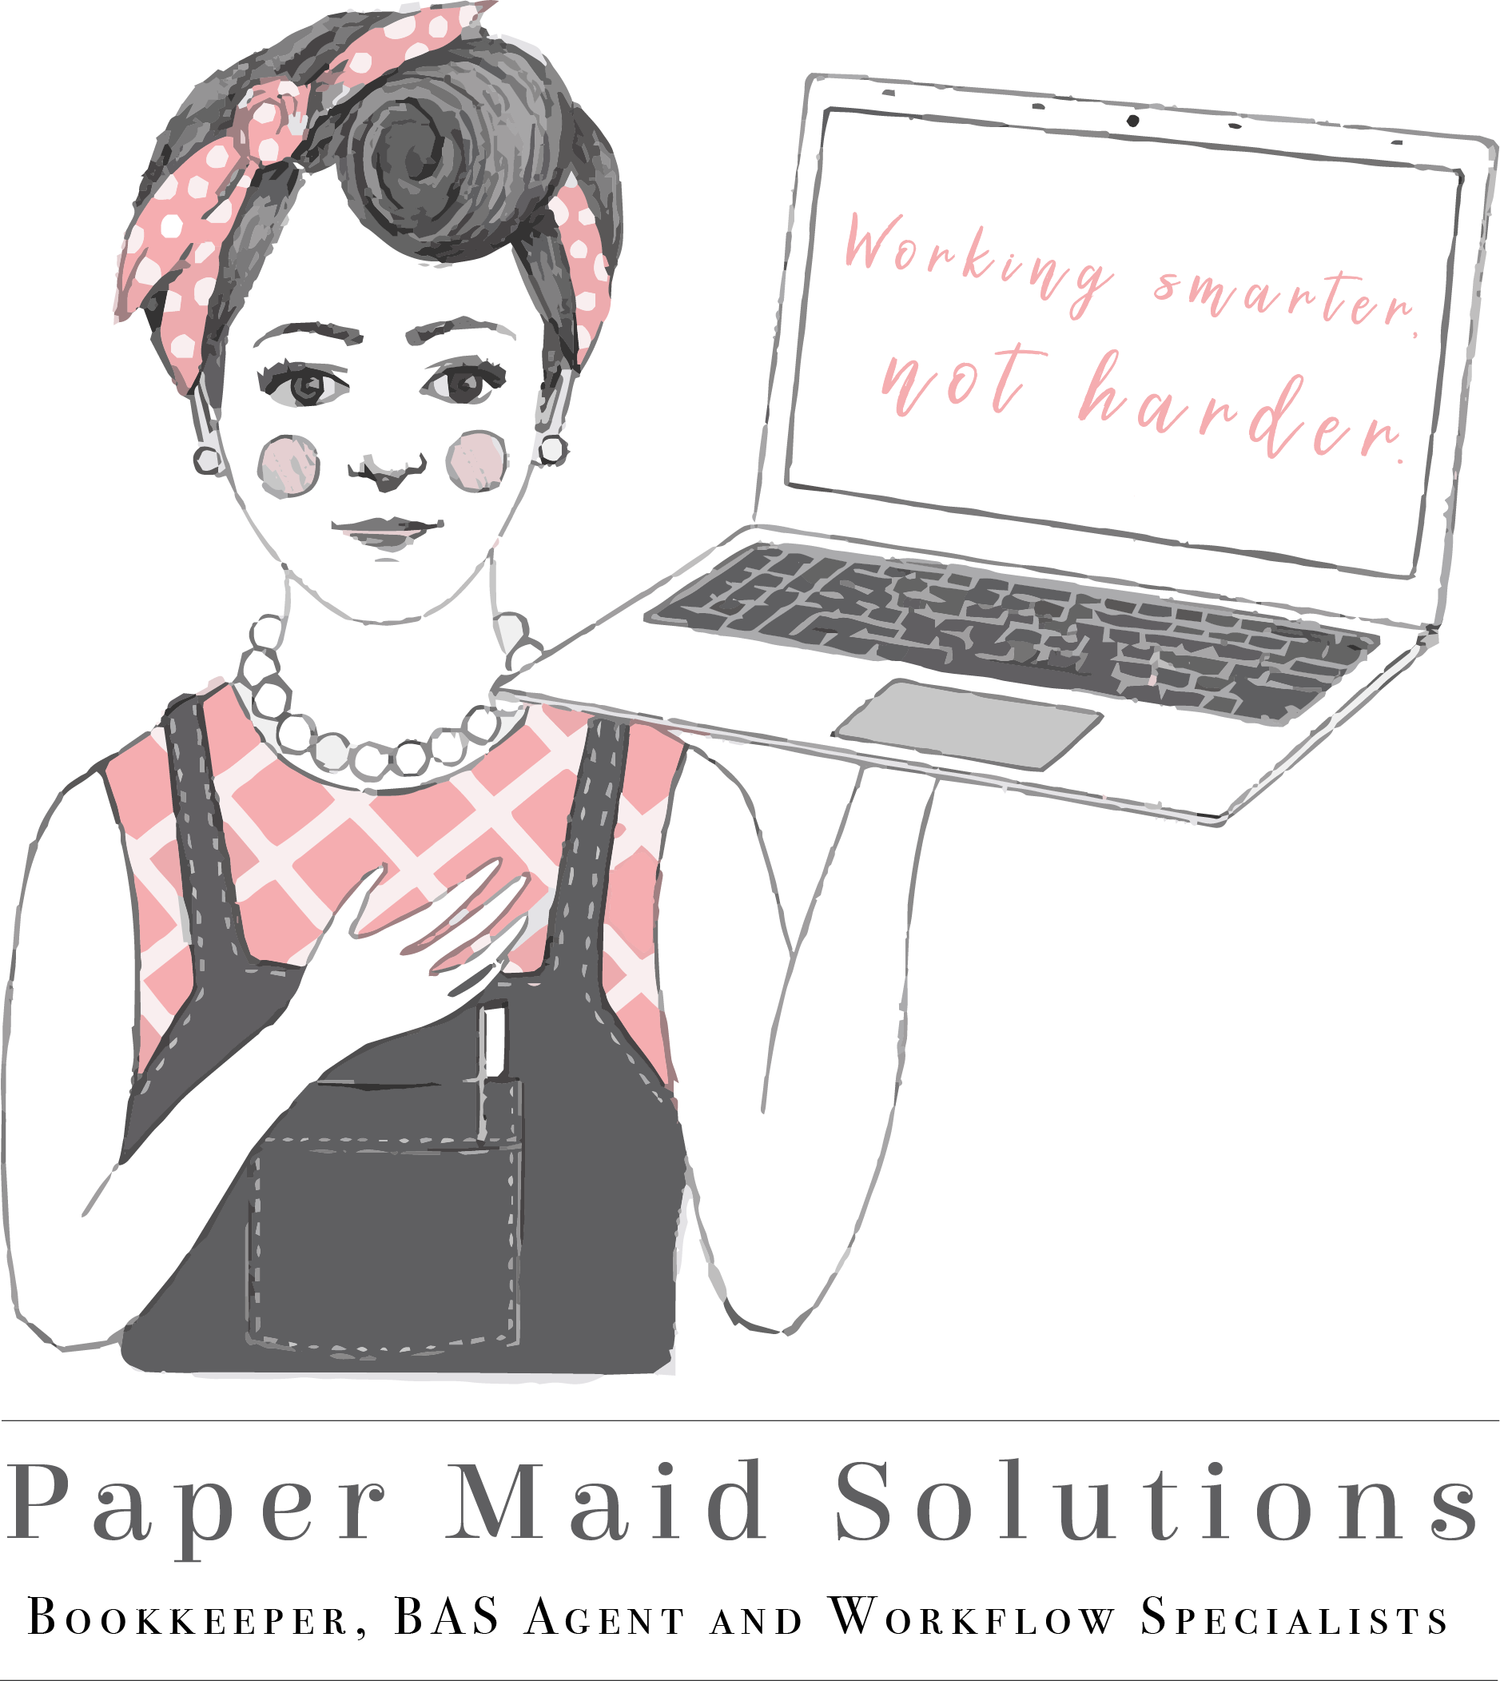 Paper Maid Solutions